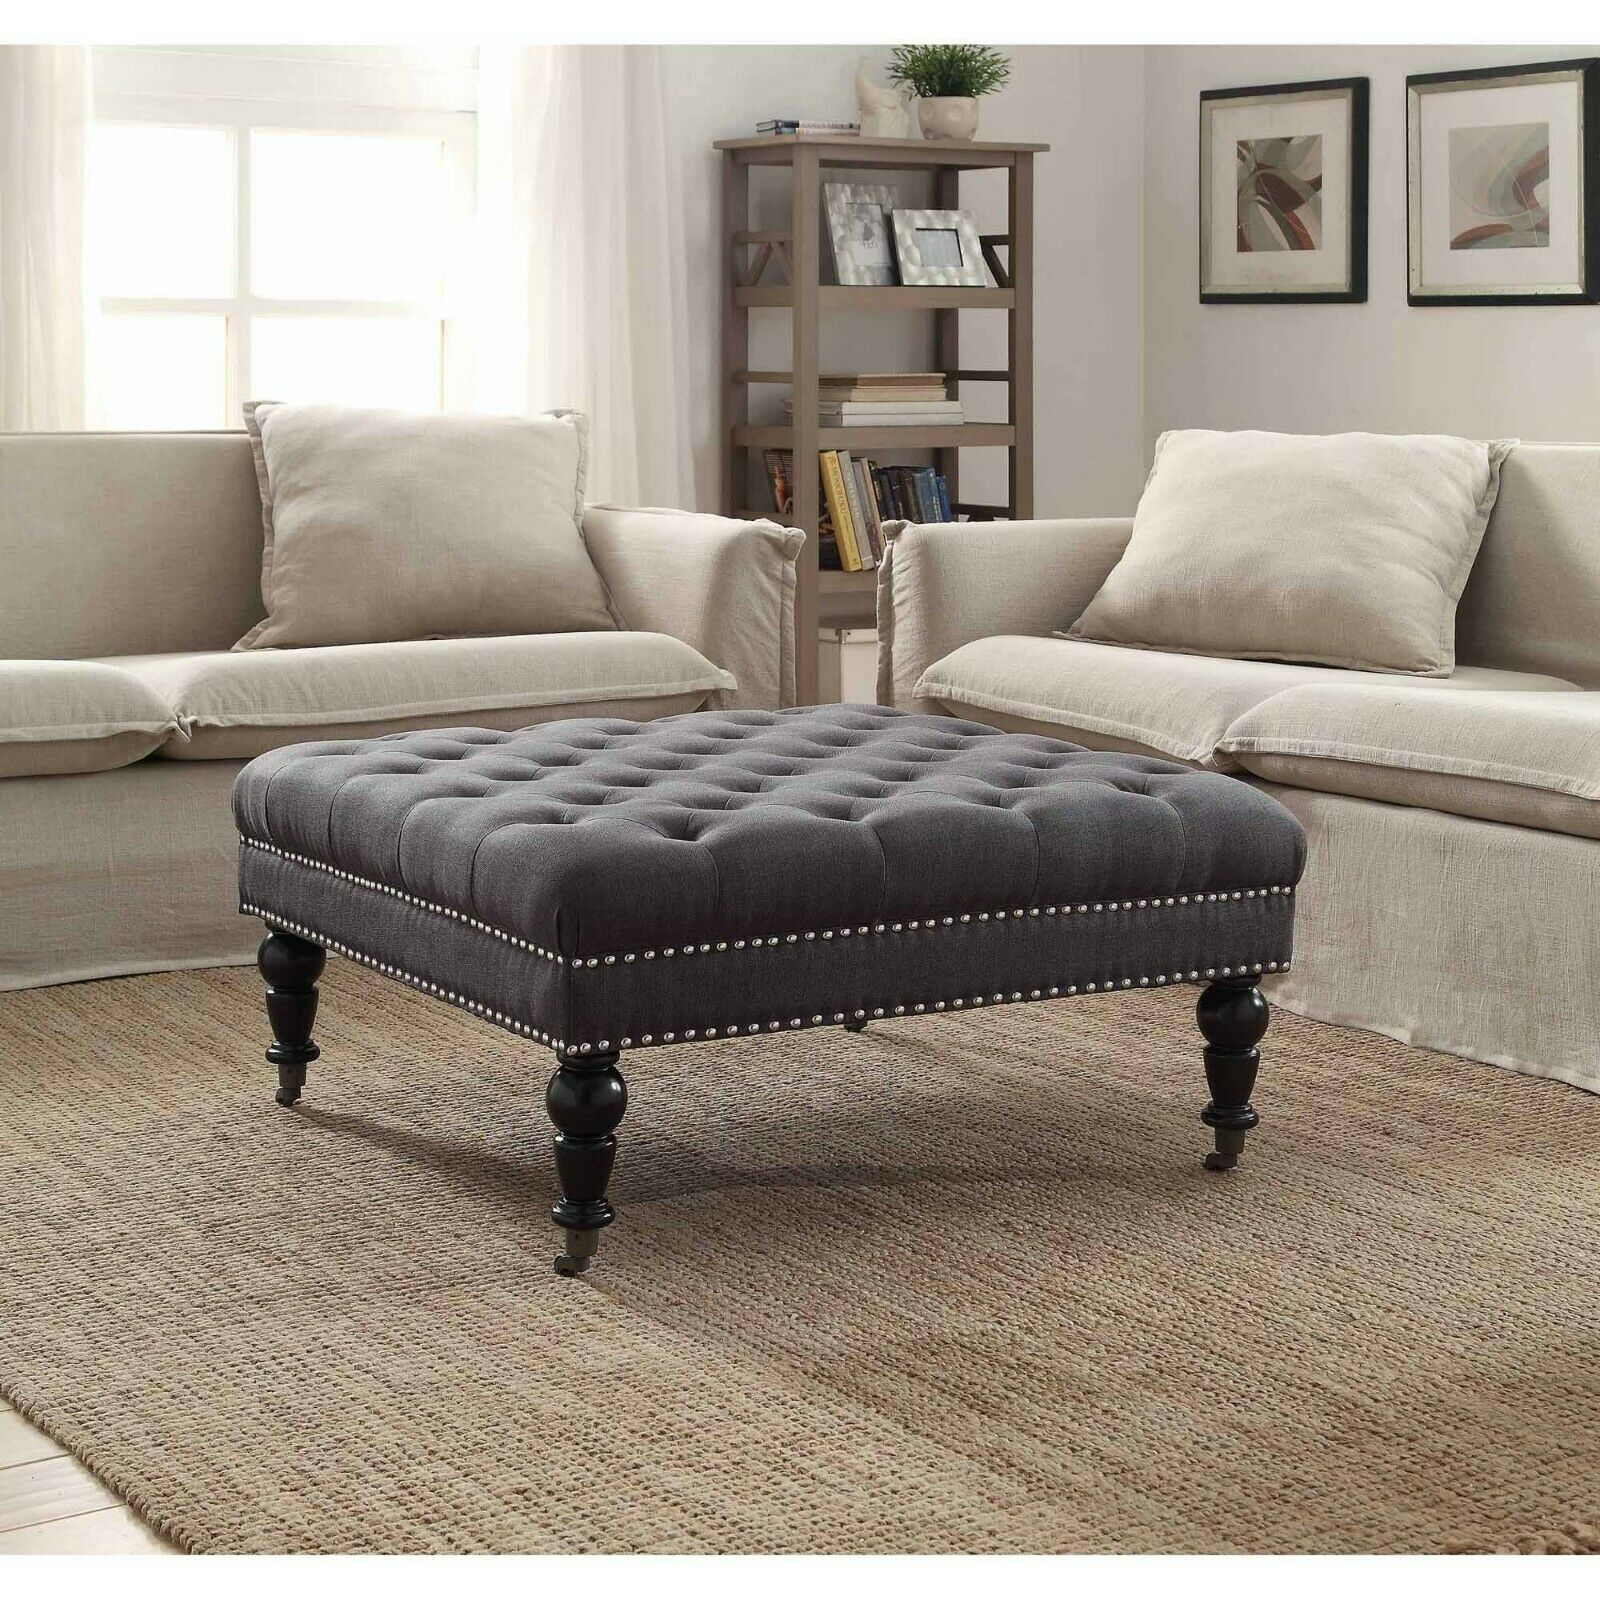 36 In Wide Black Square Coffee Table Storage Ottoman For Sale Online Ebay